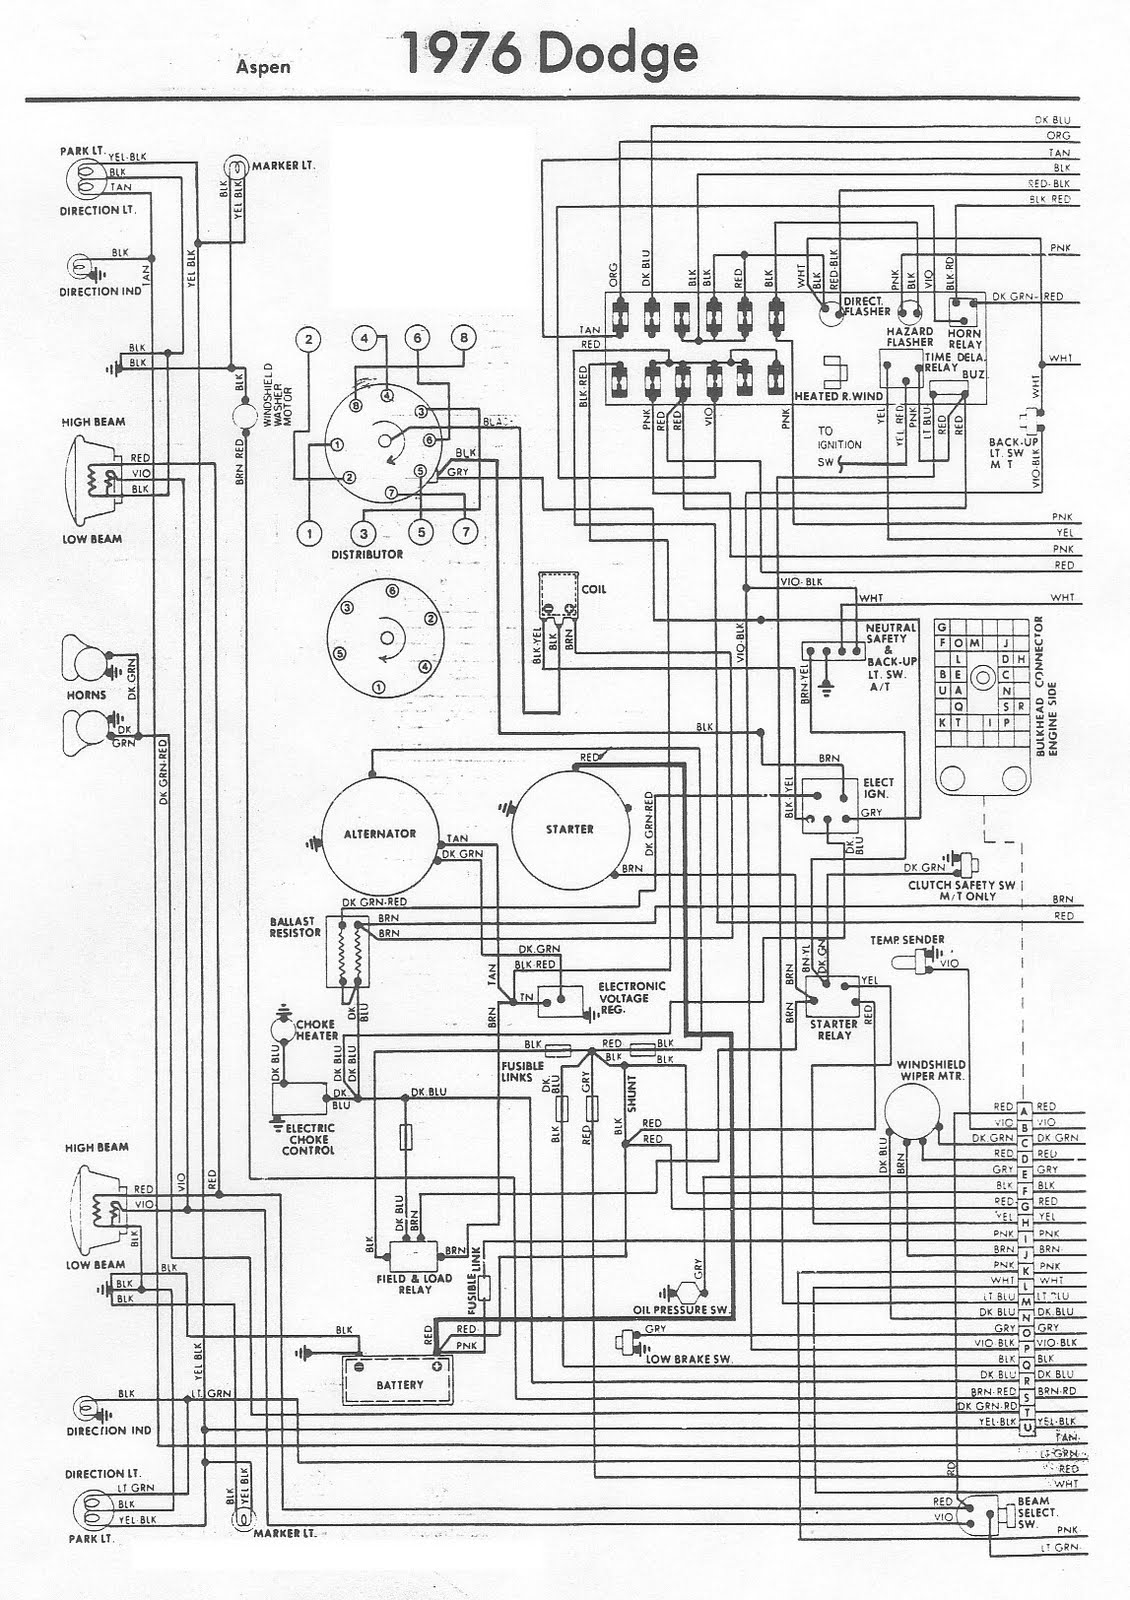 1977 Dodge Aspen Wiring Diagram Block And Schematic Diagrams Truck Alternator Free Auto 1976 Engine Compartment Rh Autowiringdiagram Blogspot Com 318 Distributor